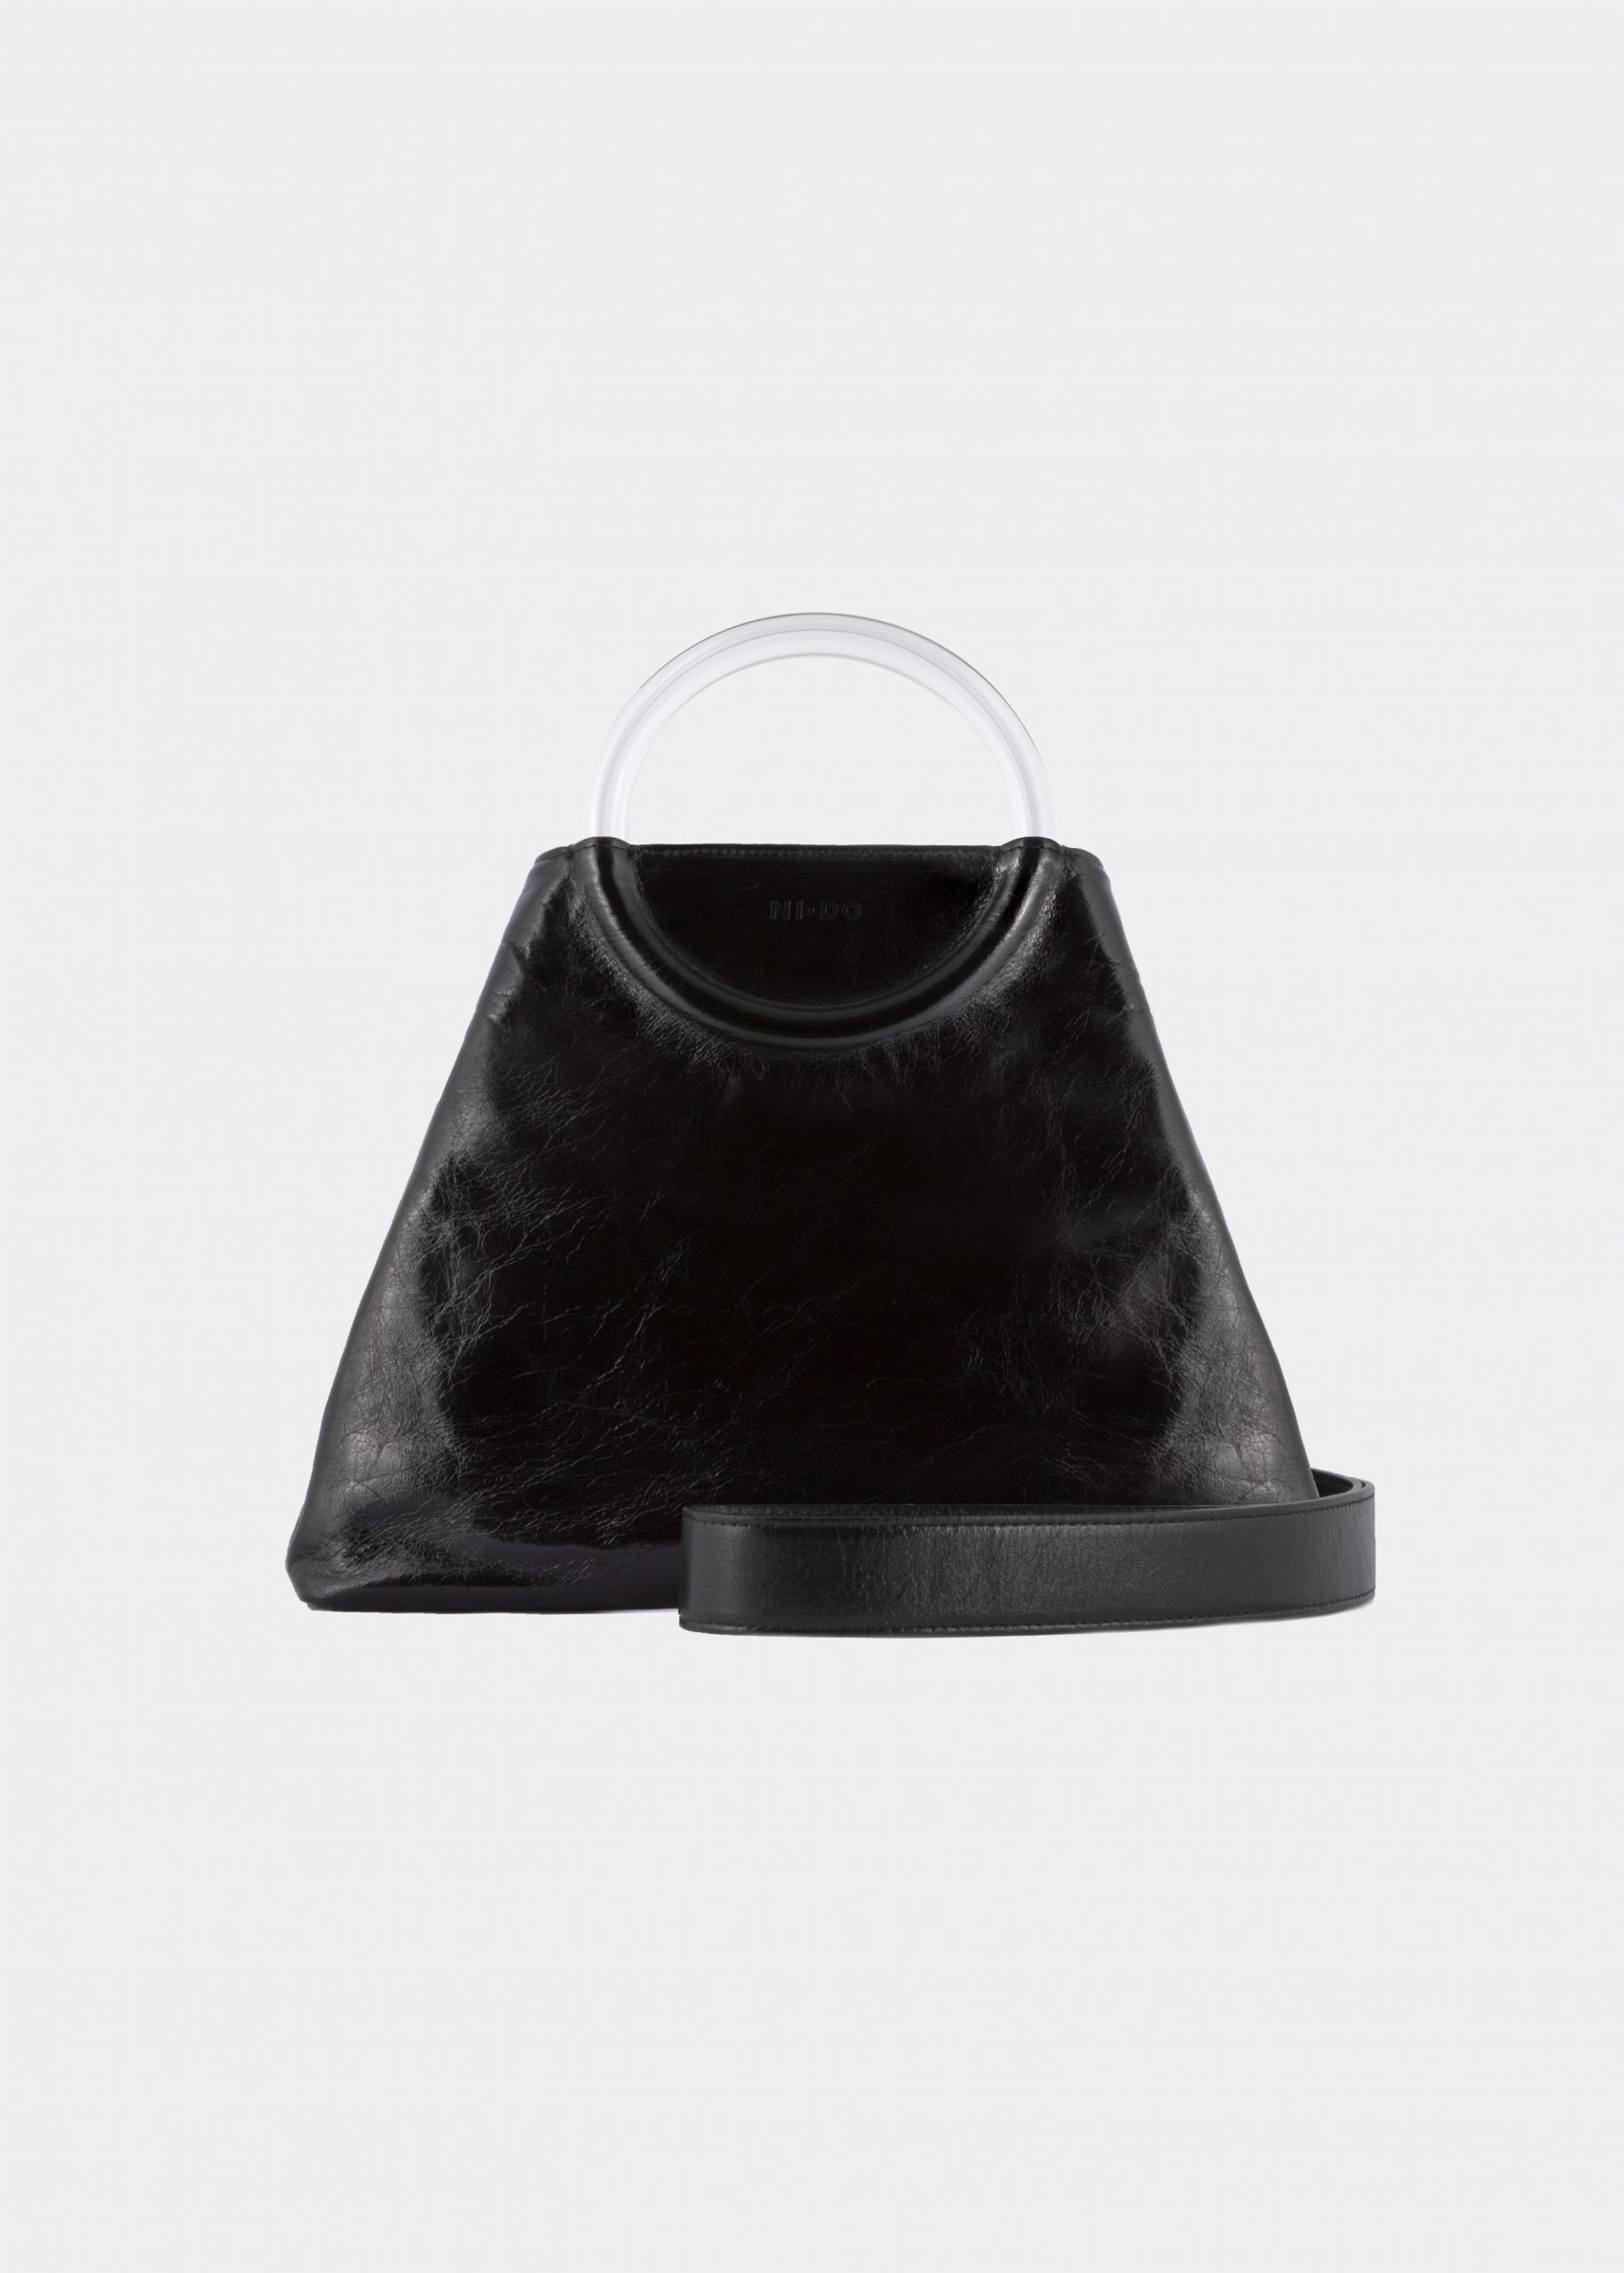 NIDO Bolla Maxi bag Glossy-Black Plexy_shoulderstrap view